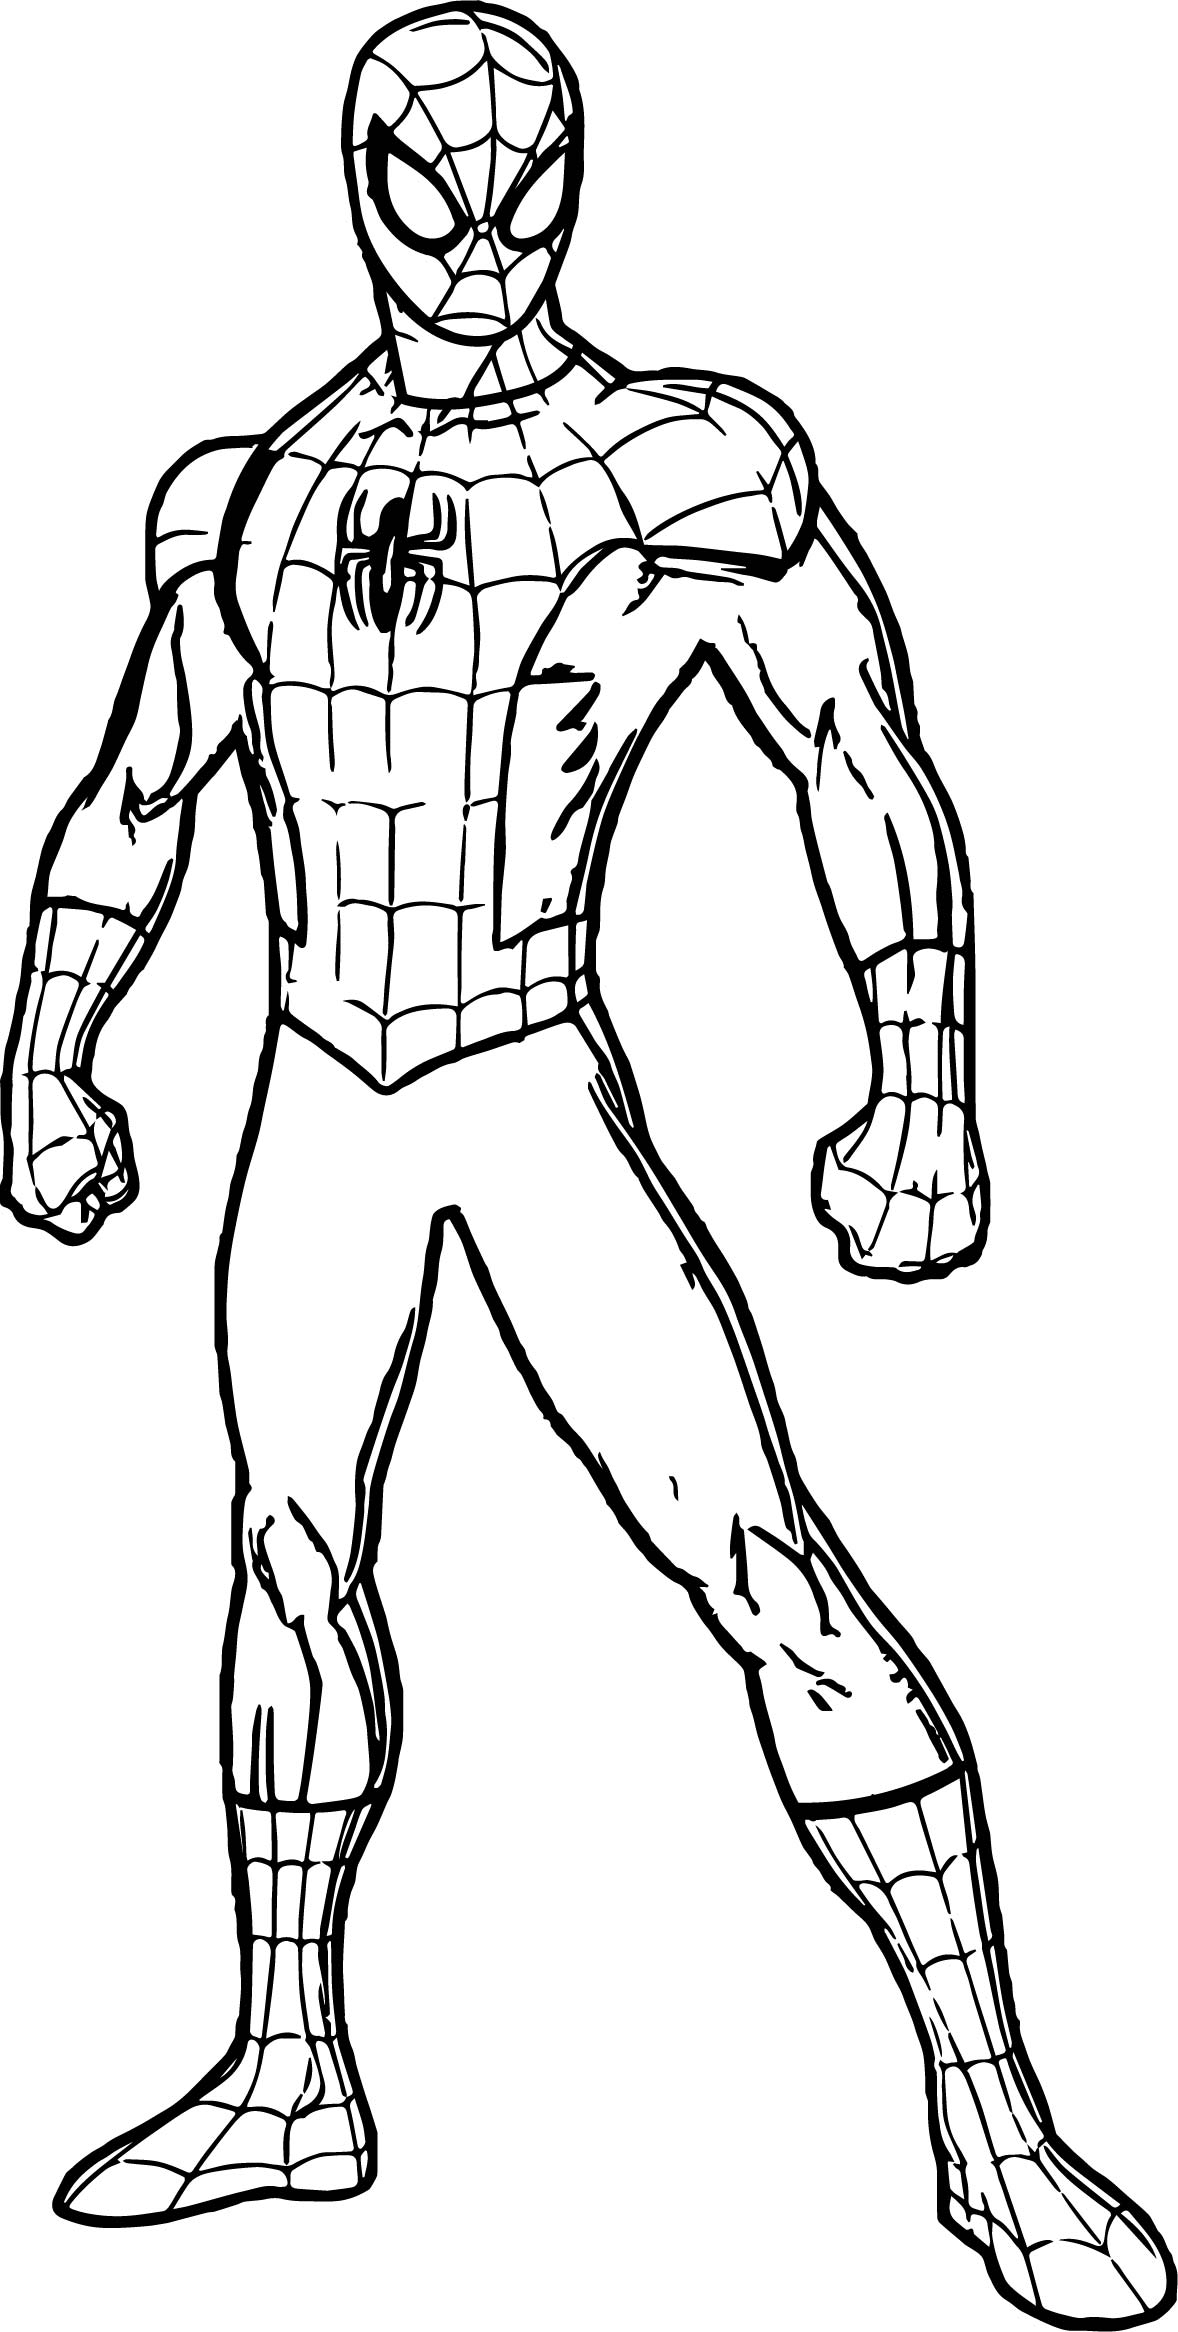 1178x2332 Spiderman Coloring Pages Online Free, Spiderman Coloring Pages